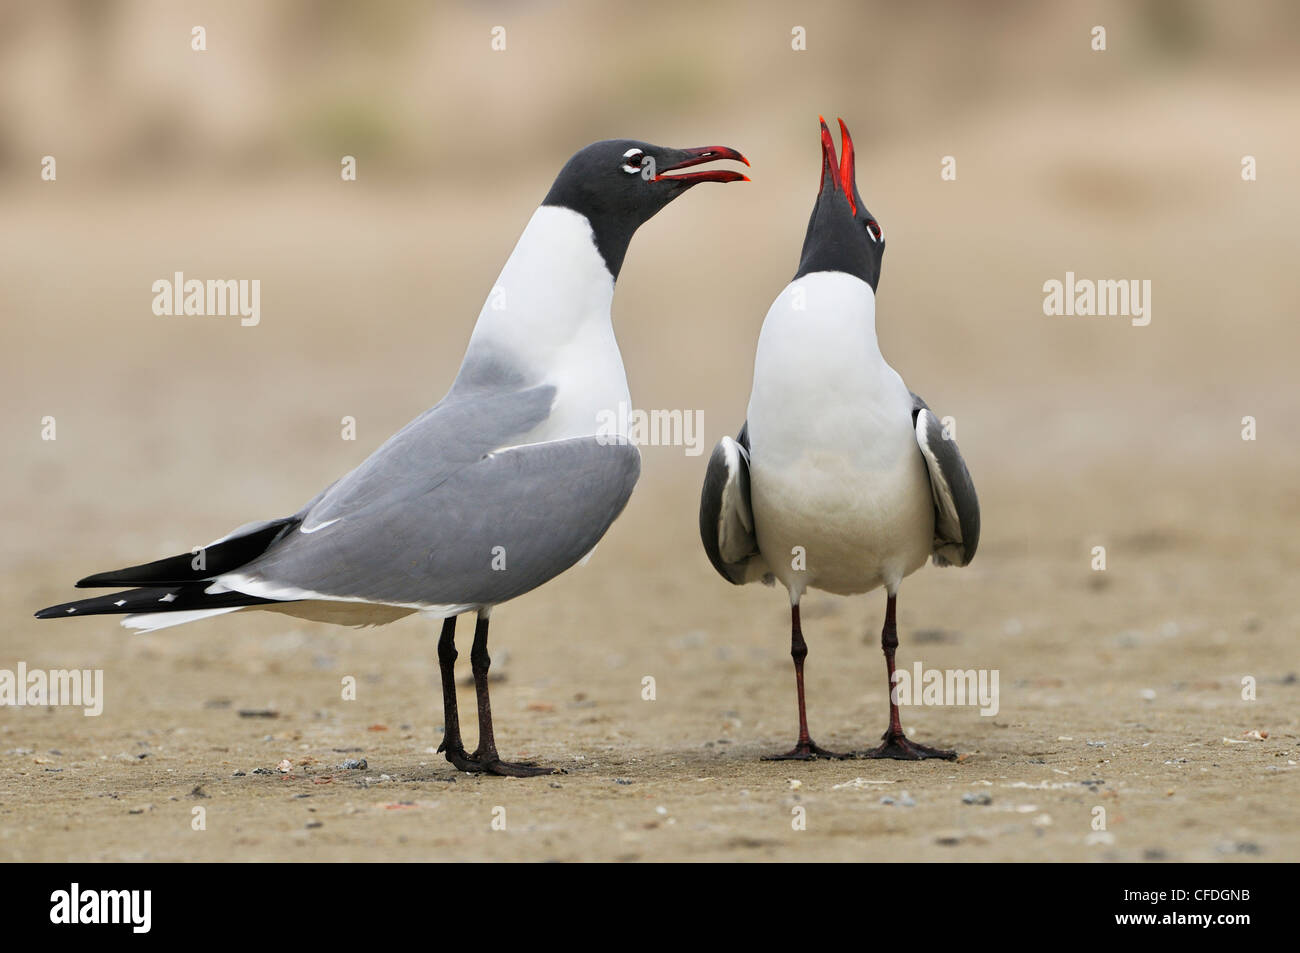 Laughing Gulls (Larus atricilla) - South Padre Island, Texas, United States of America - Stock Image